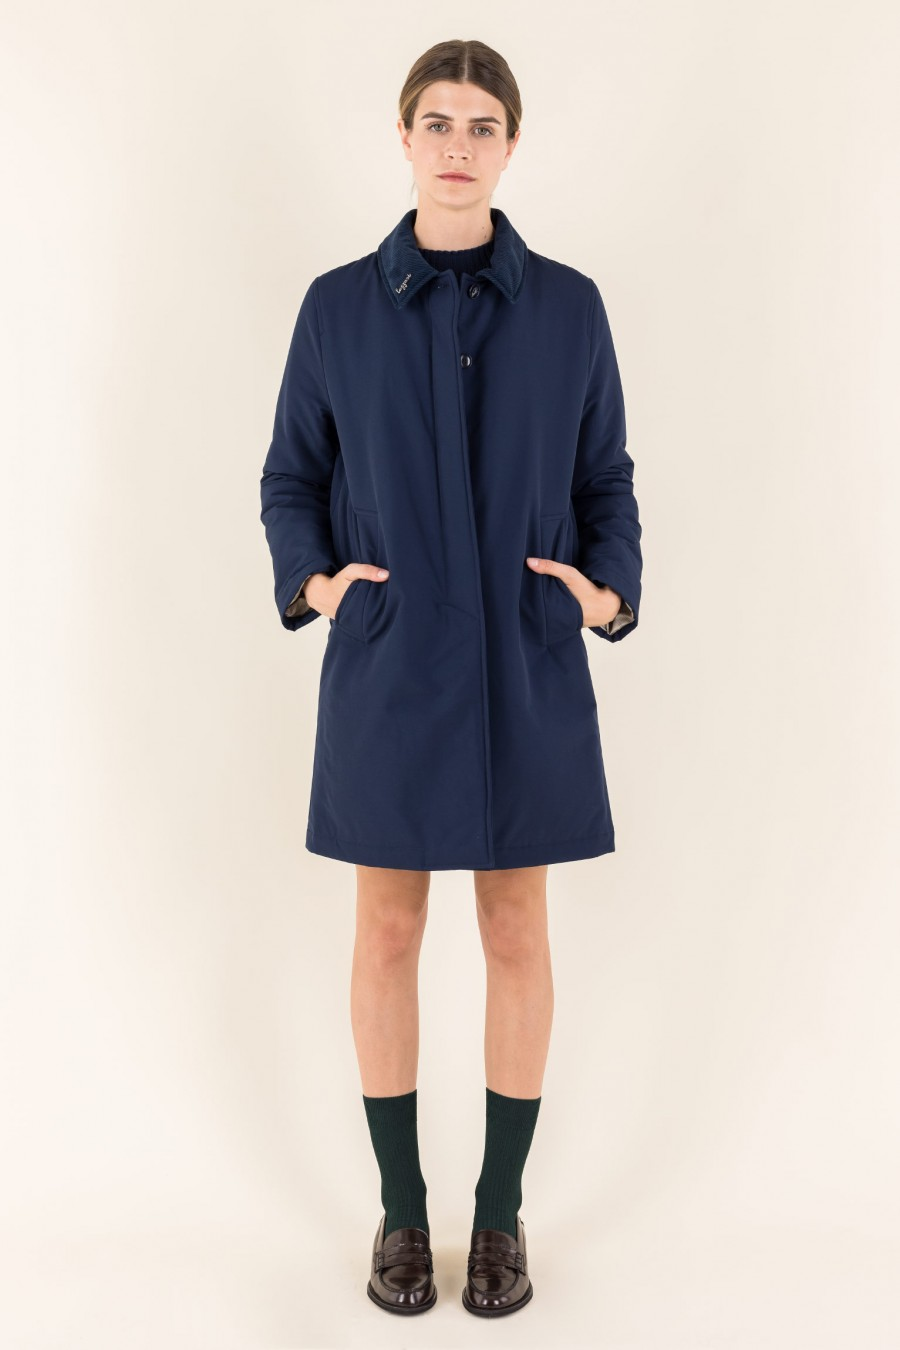 Overcoat in technical fabric and corduroy collar